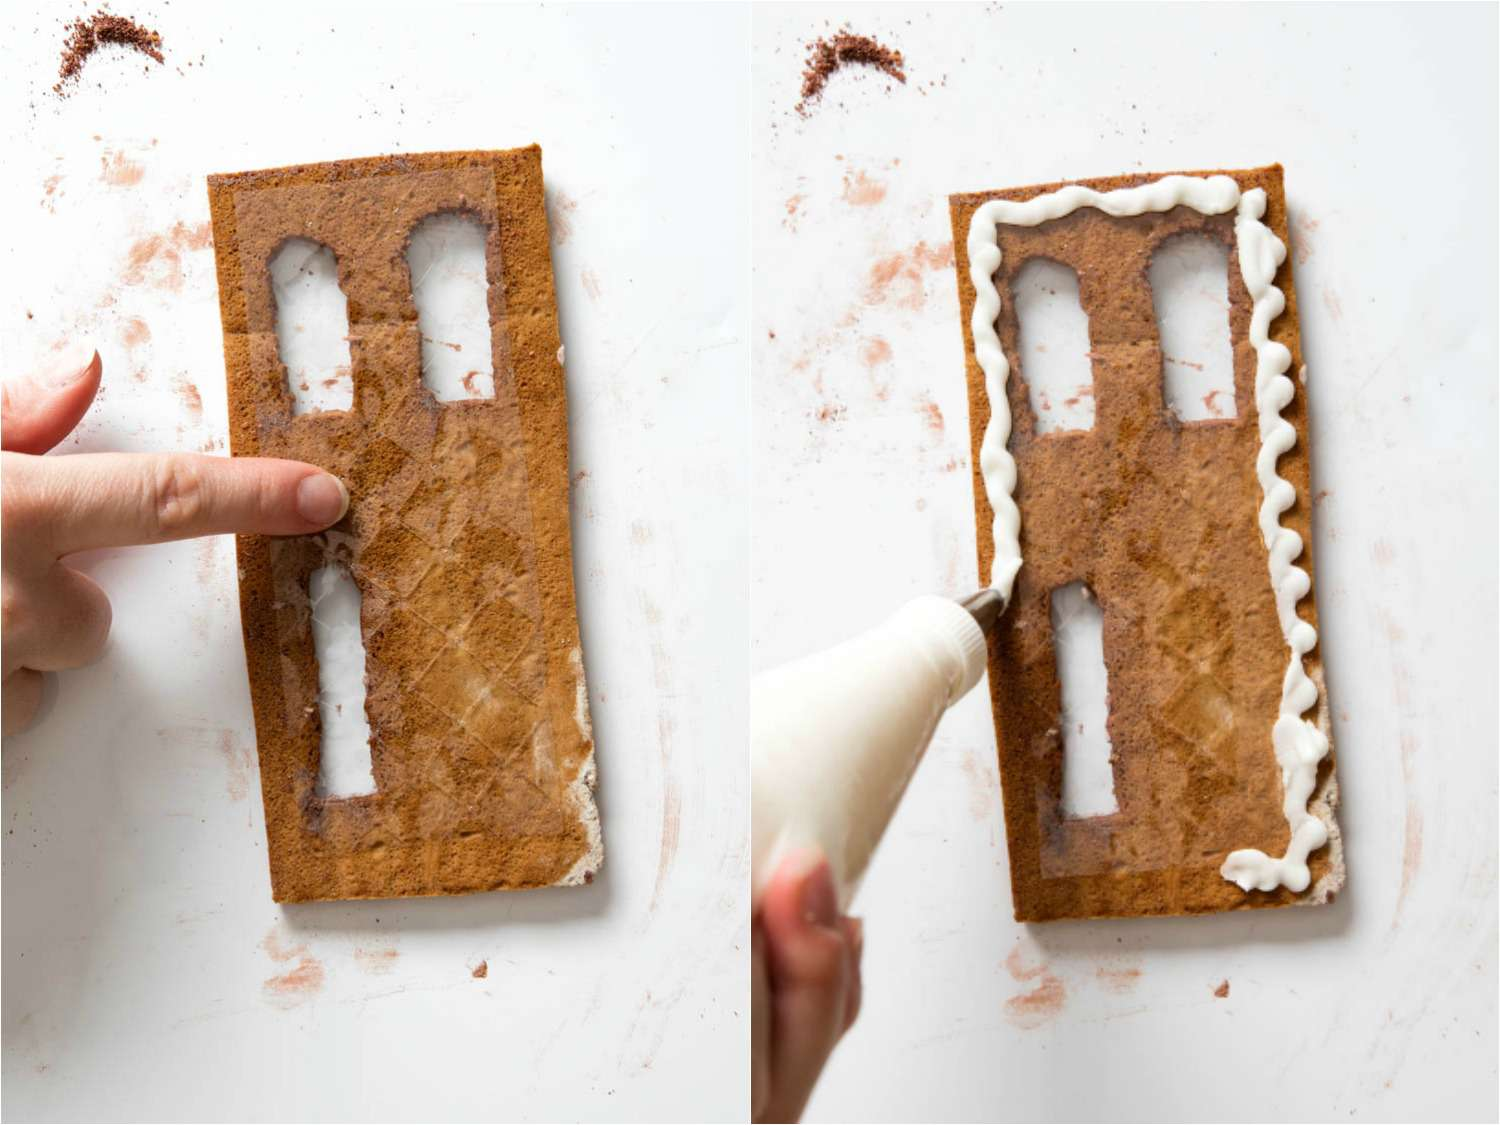 Collage of photos of attaching sheet gelatin to a gingerbread wall, using royal icing, to make windows